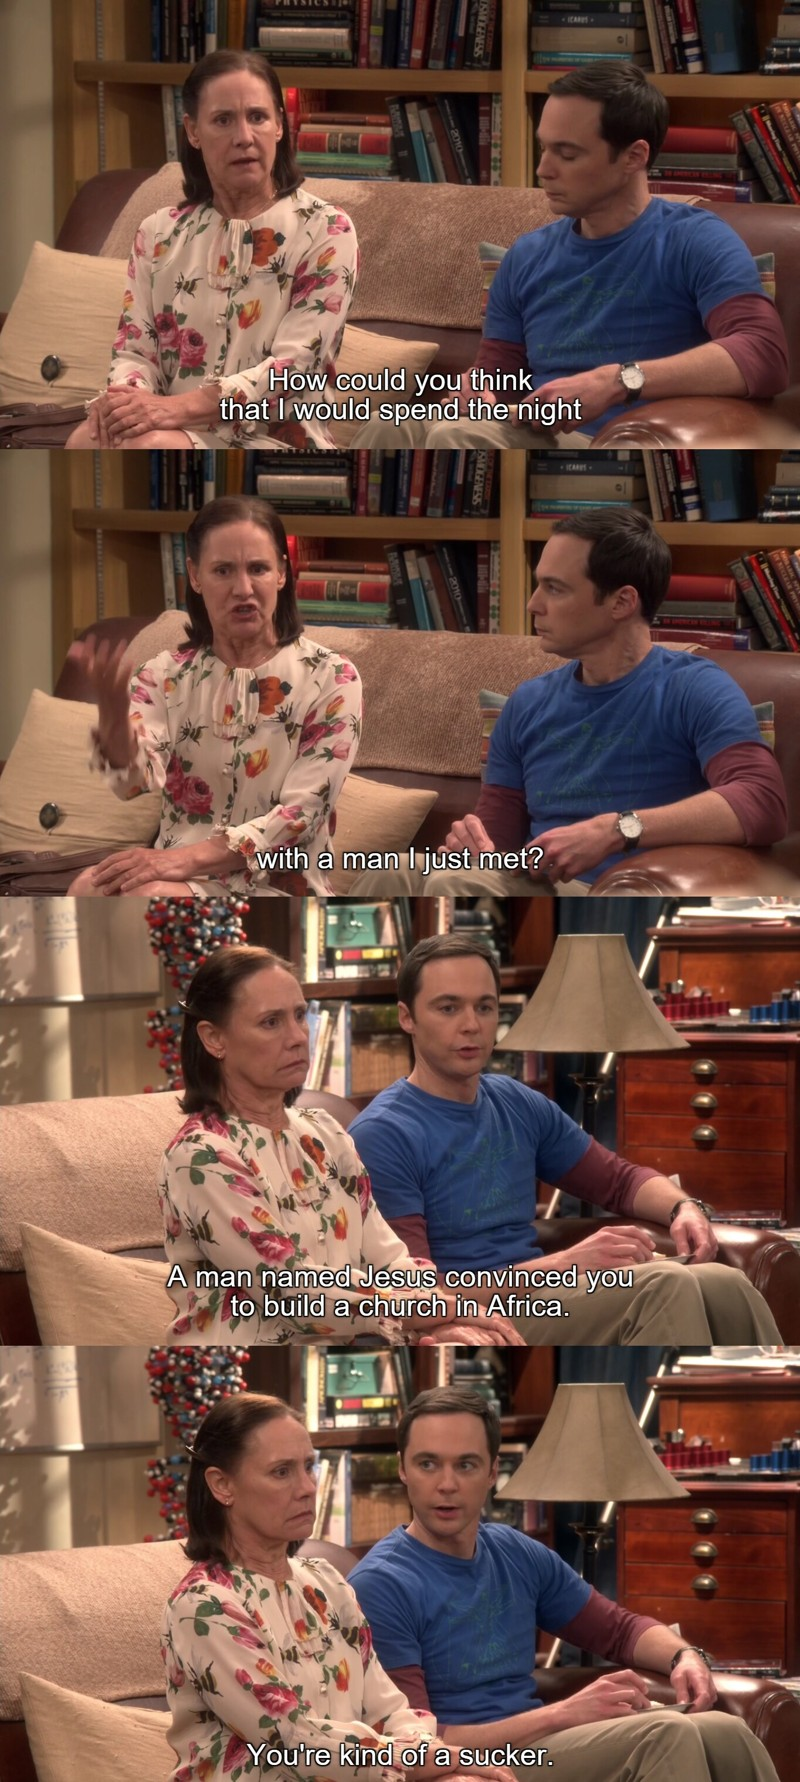 Sheldon made me laugh a lot in this scene! 😂😂😂